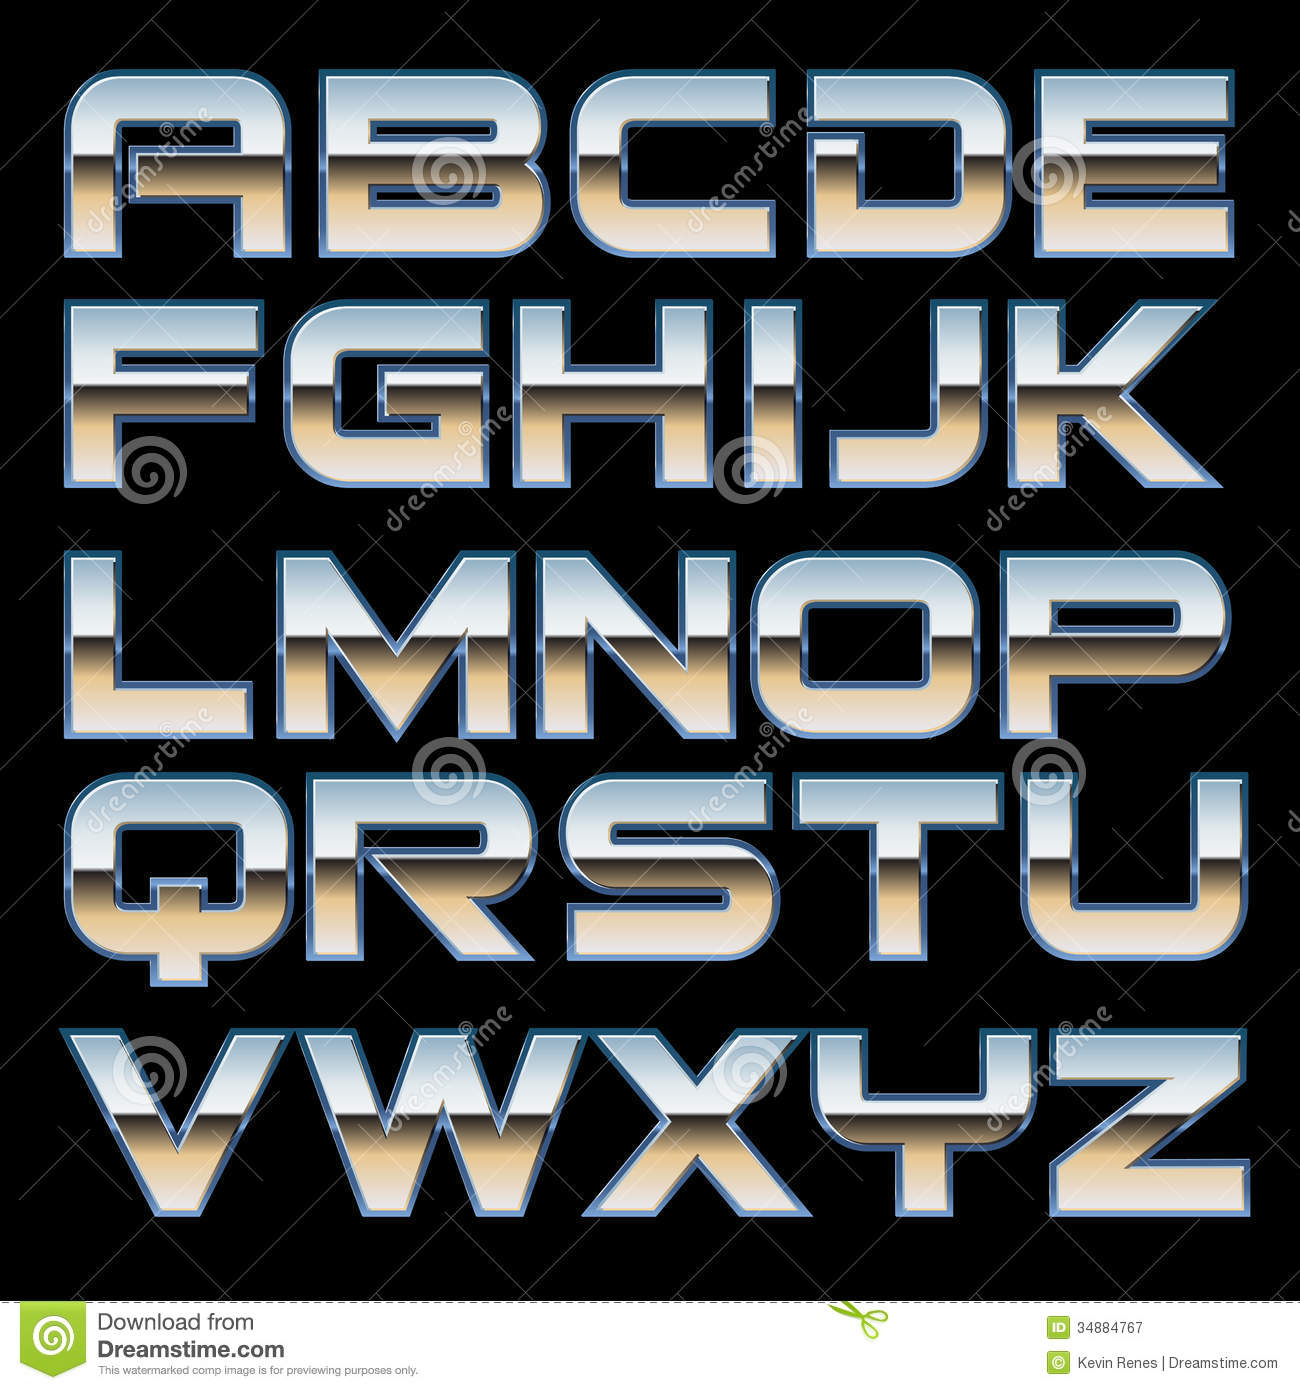 Royalty Free Stock Photography Vector Metal Font Characterset Style Image34884767 on Letter U Video Download